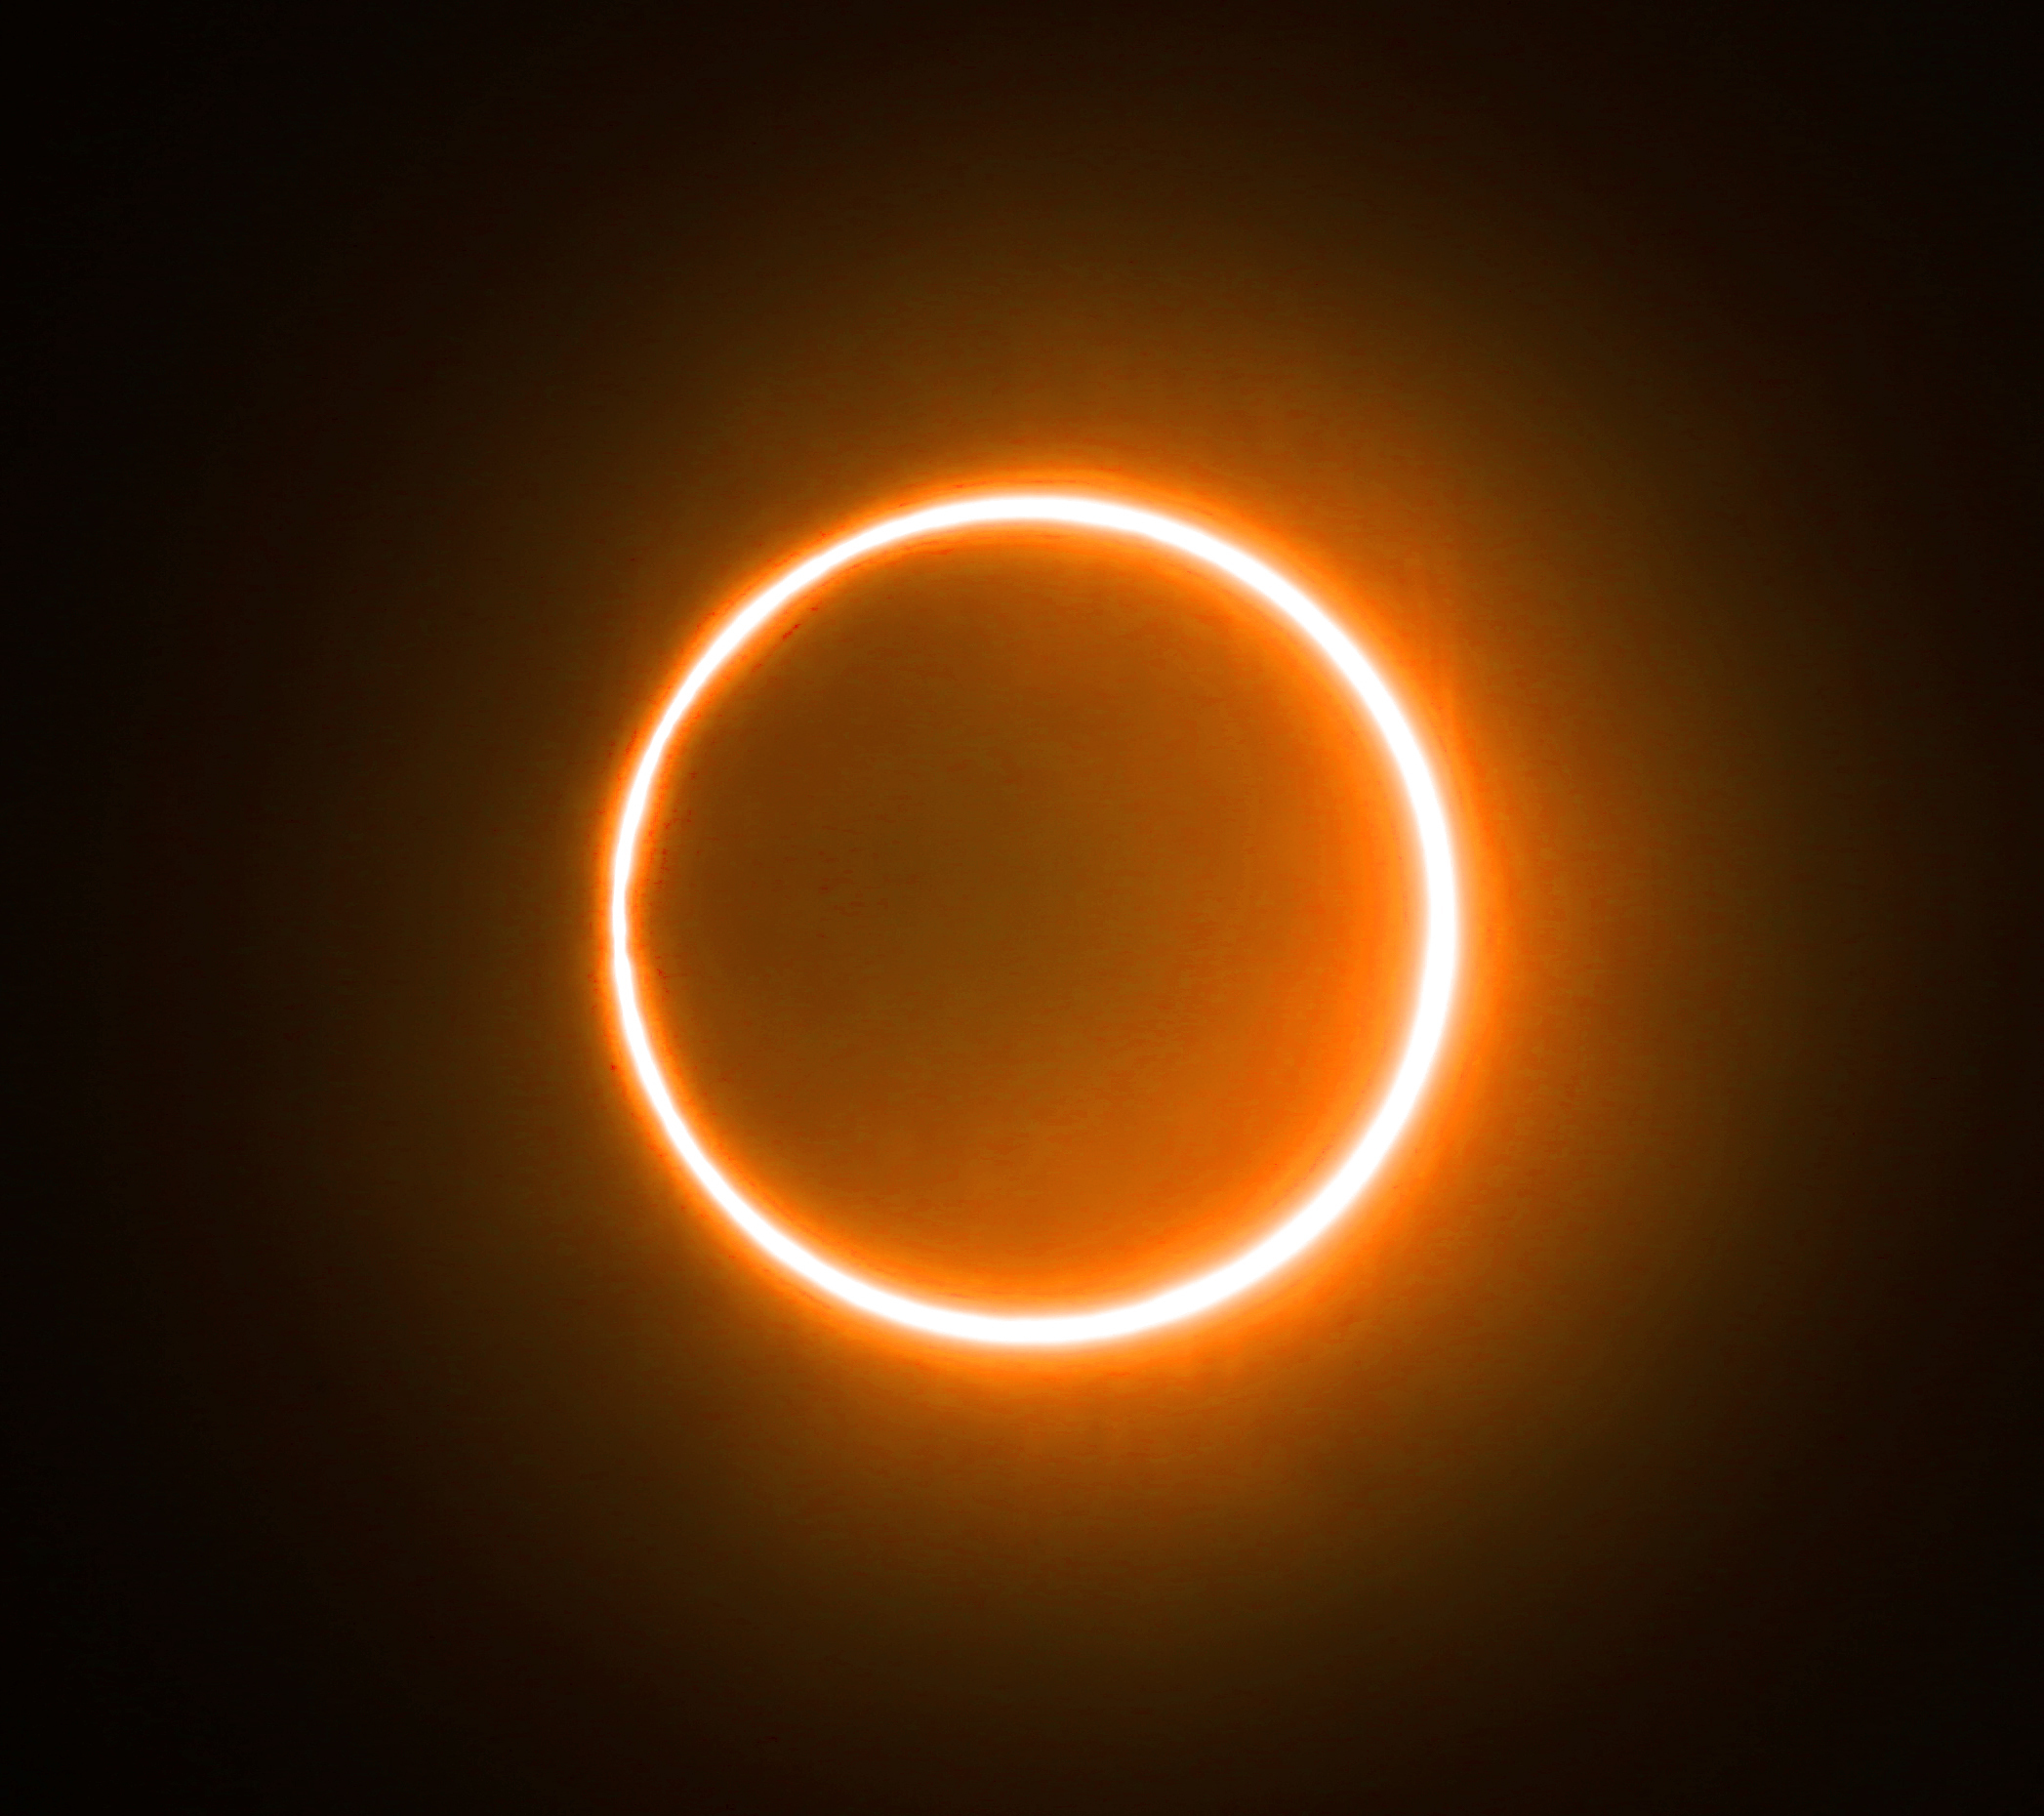 'Ring of fire' solar eclipse lights up the sky